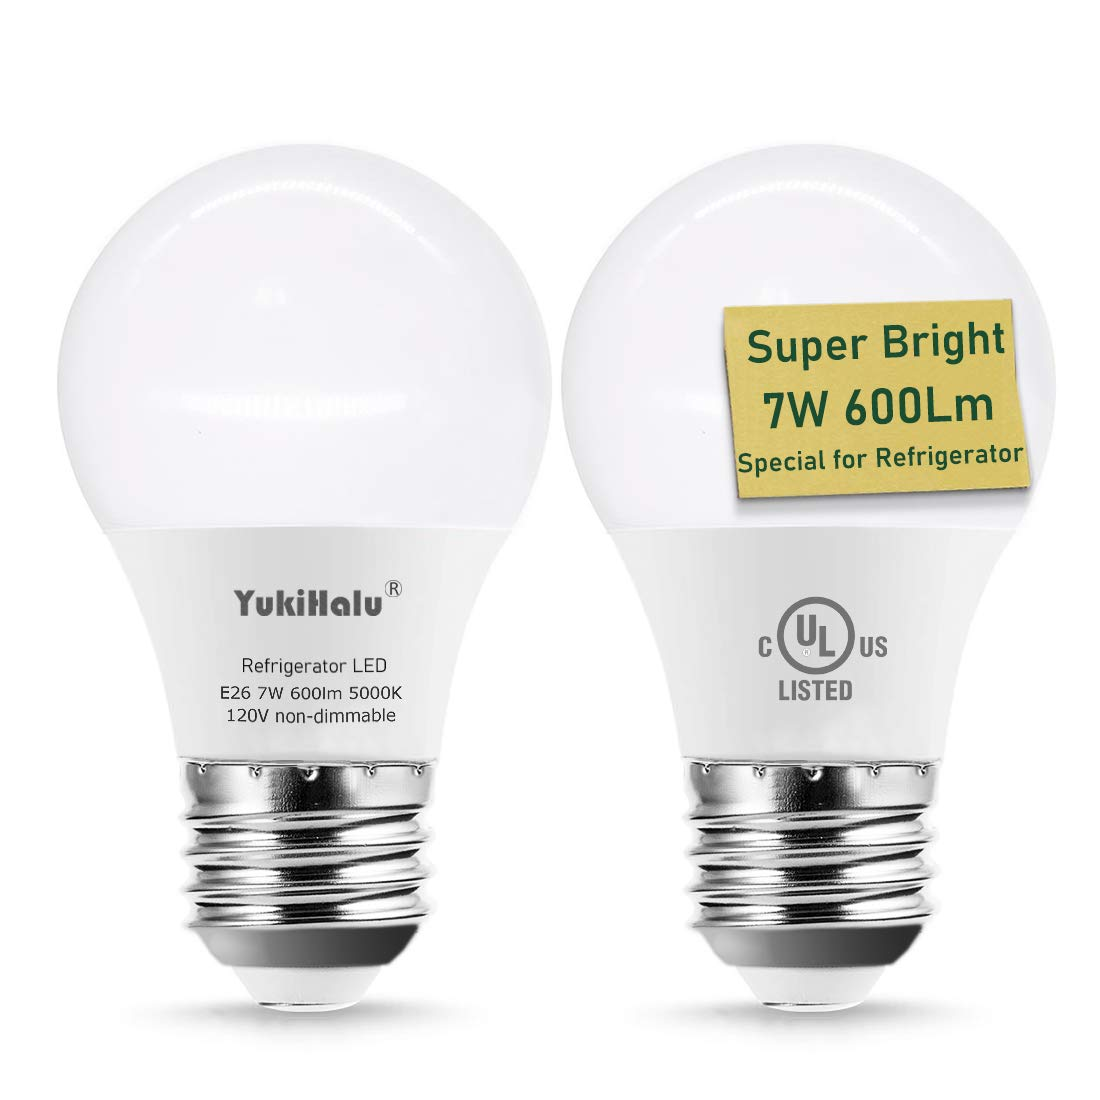 YUKIHALU, LED Refrigerator Light Bulb 40W-60W Equivalent A15 Appliance Fridge Bulbs, Waterproof 600 Lumen 7W 120V Daylight 5000K E26 Medium Base, Small Size Bulb for Damp Location, Not-Dim, 2-Pack